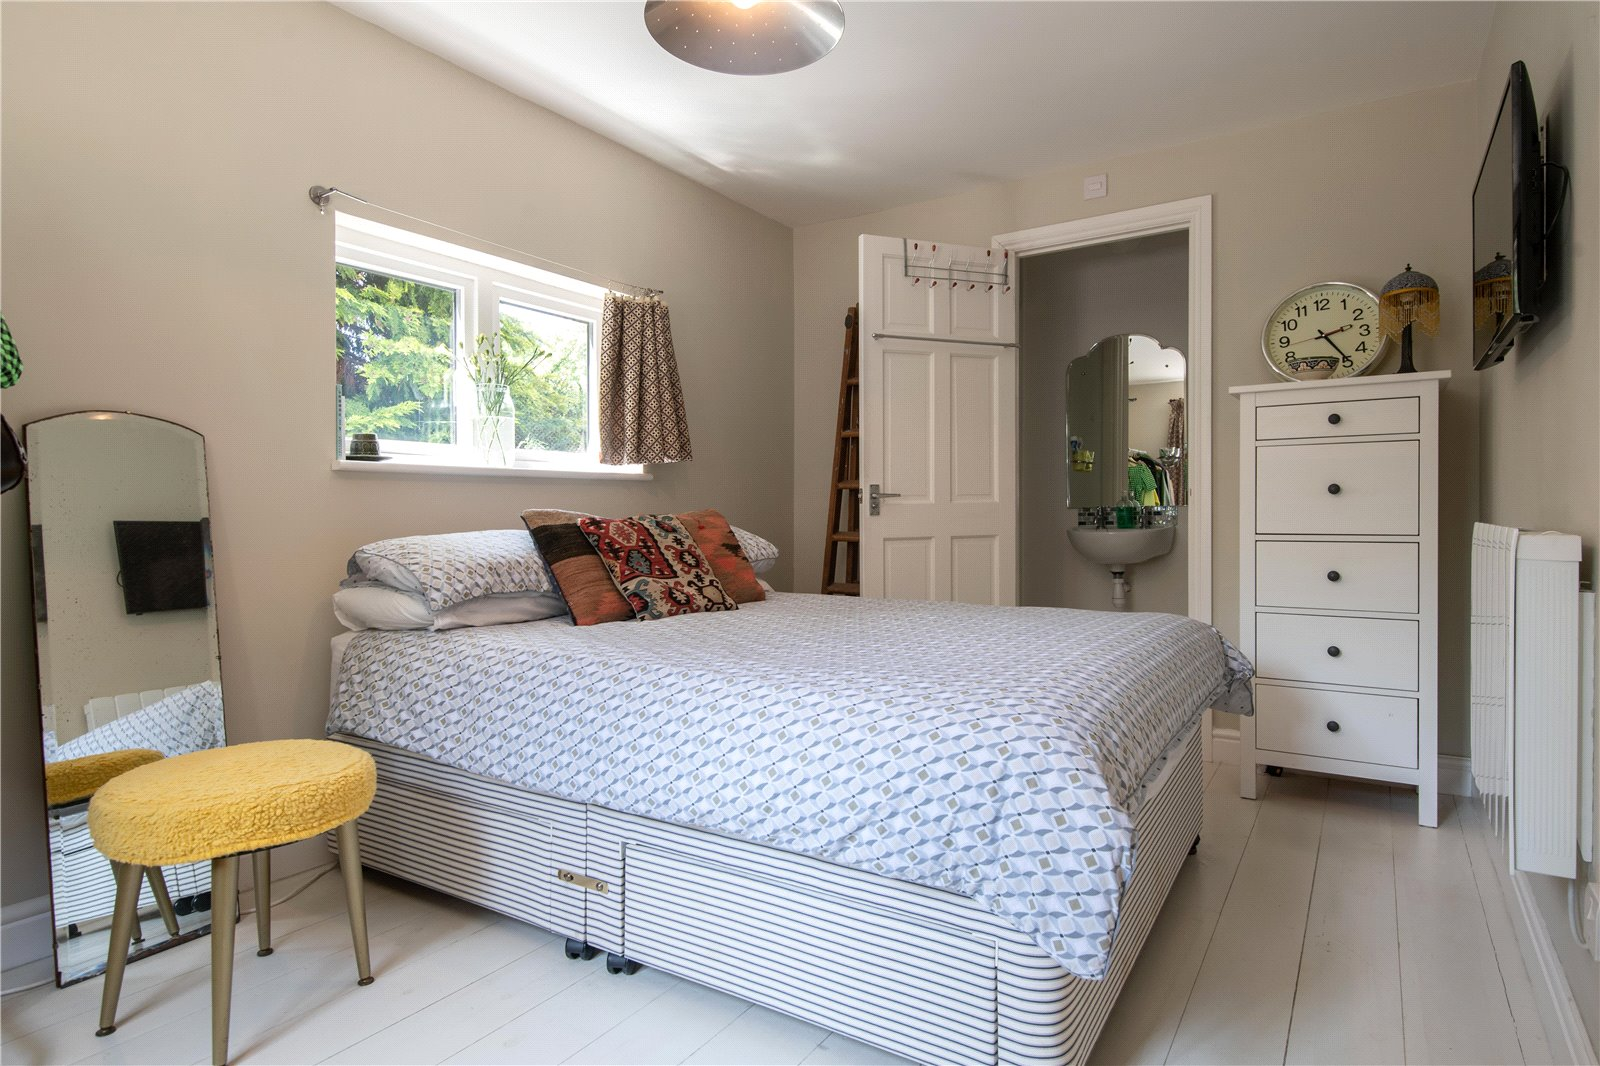 5 bed house for sale in Rookery Road, Wyboston  - Property Image 15